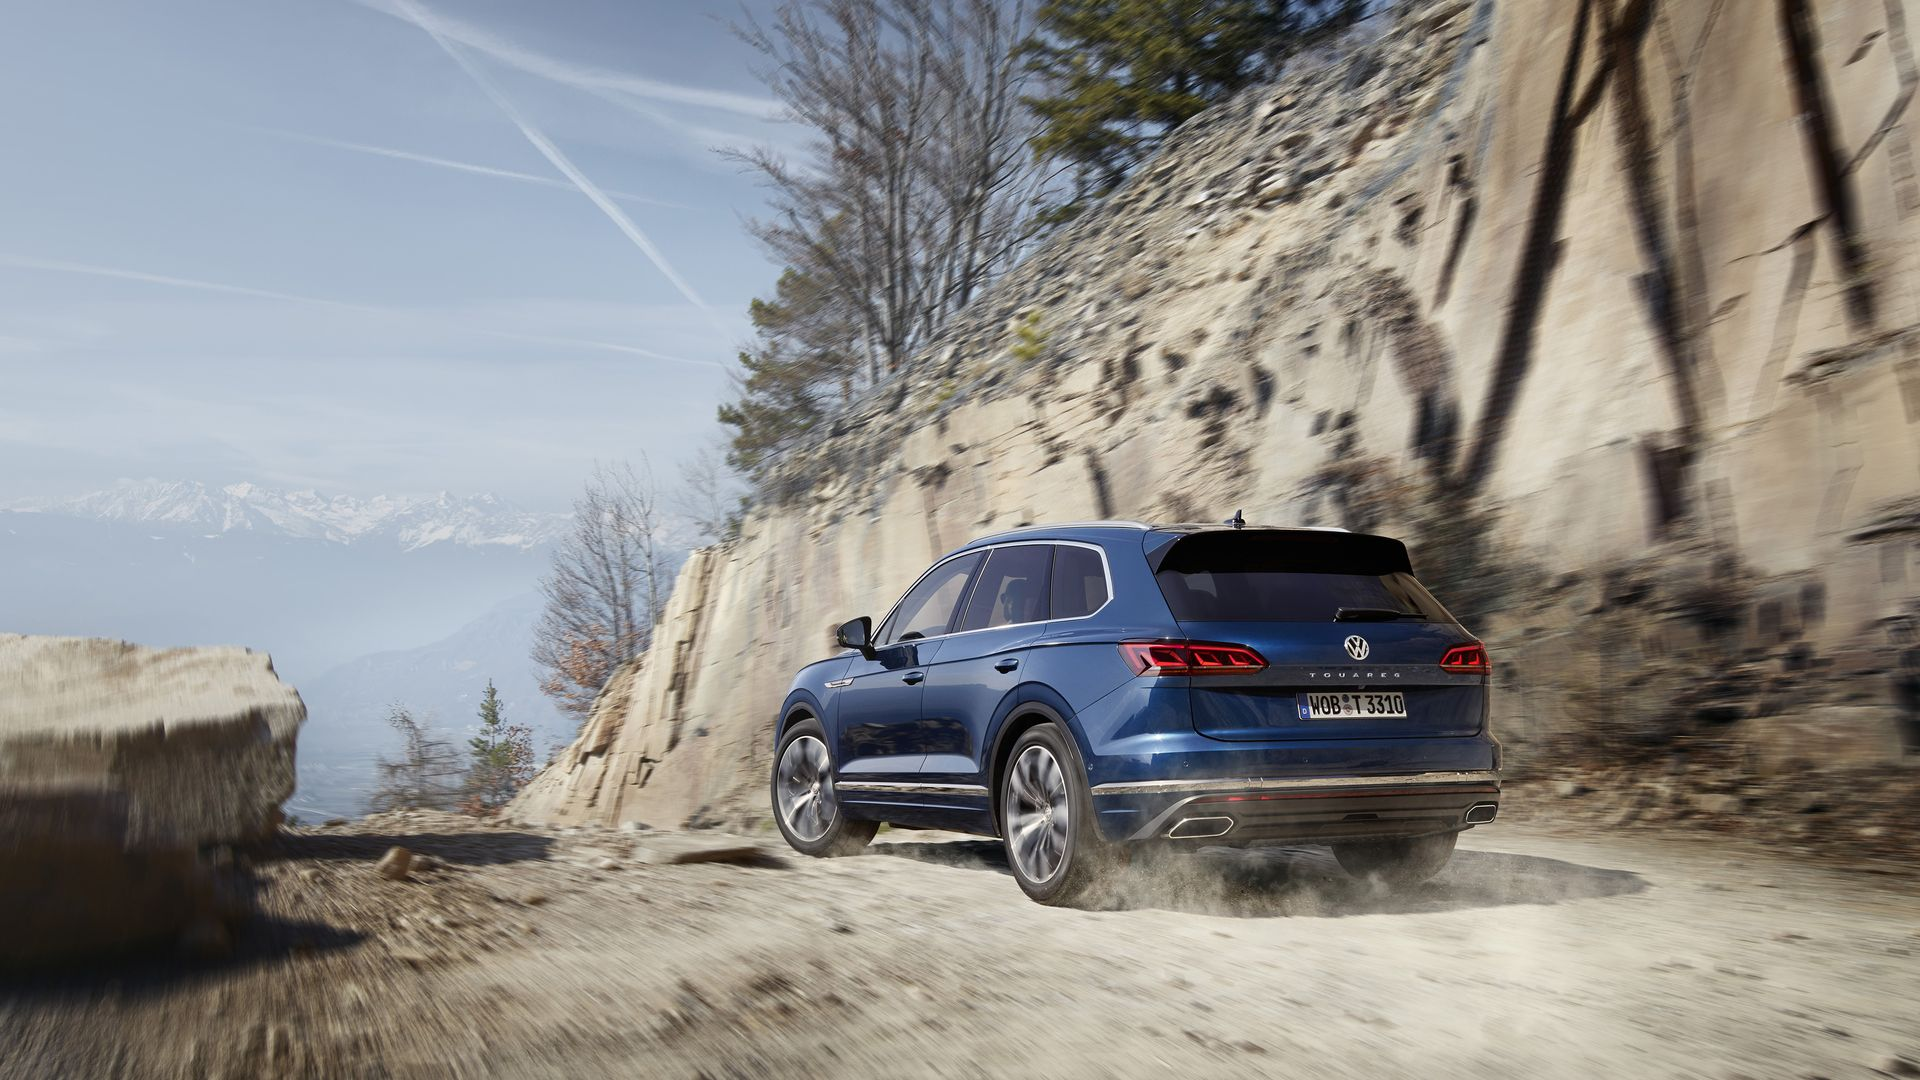 VW Touareg off road